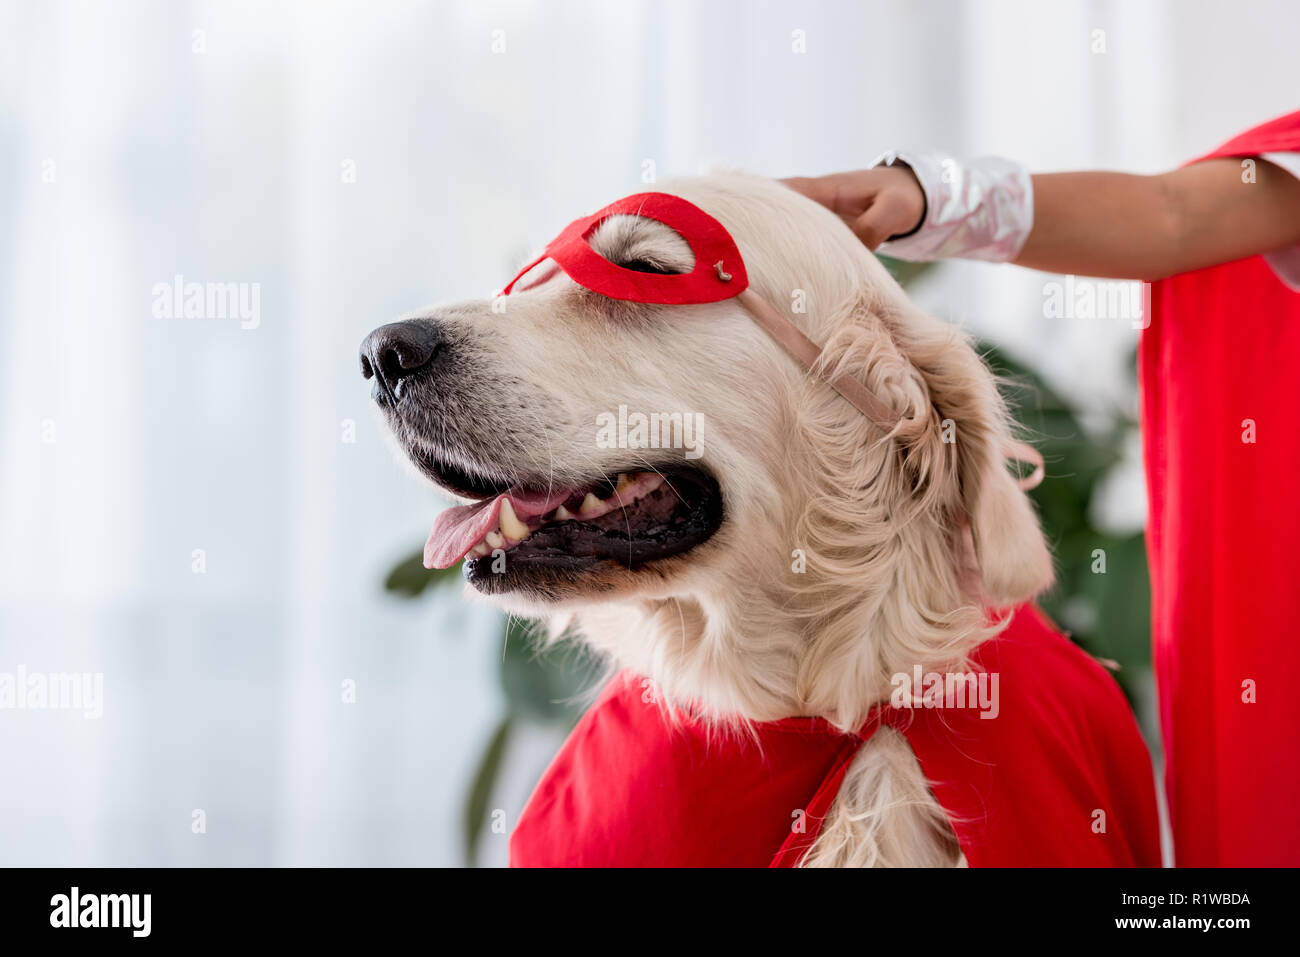 Partial view of hand petting golden retriever dog in red superhero mask - Stock Image